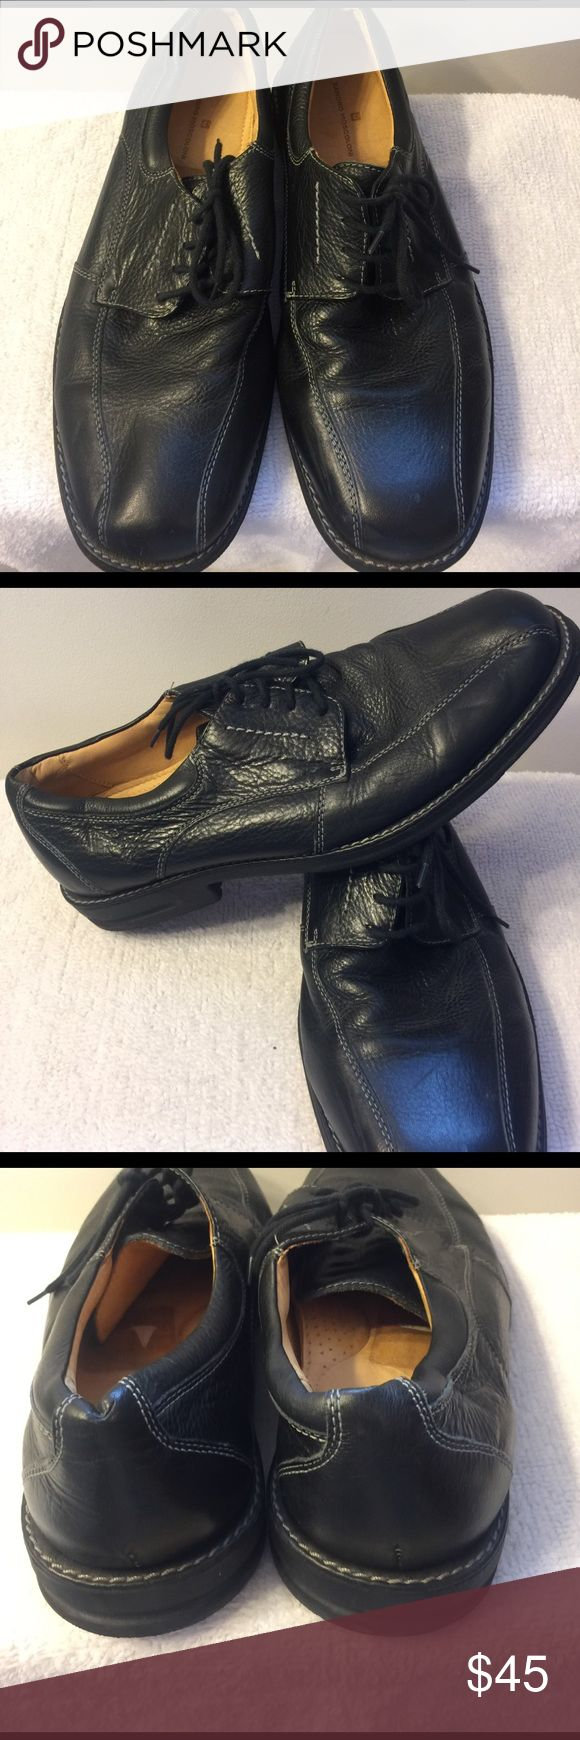 Sandro Miscoloni Men's Shoes Size 11 1/2 $45 These are black leather shoes with leather insoles. in perfect condition Size 11 1/2D Made in Brazil $45 Sandro Moscoloni Shoes